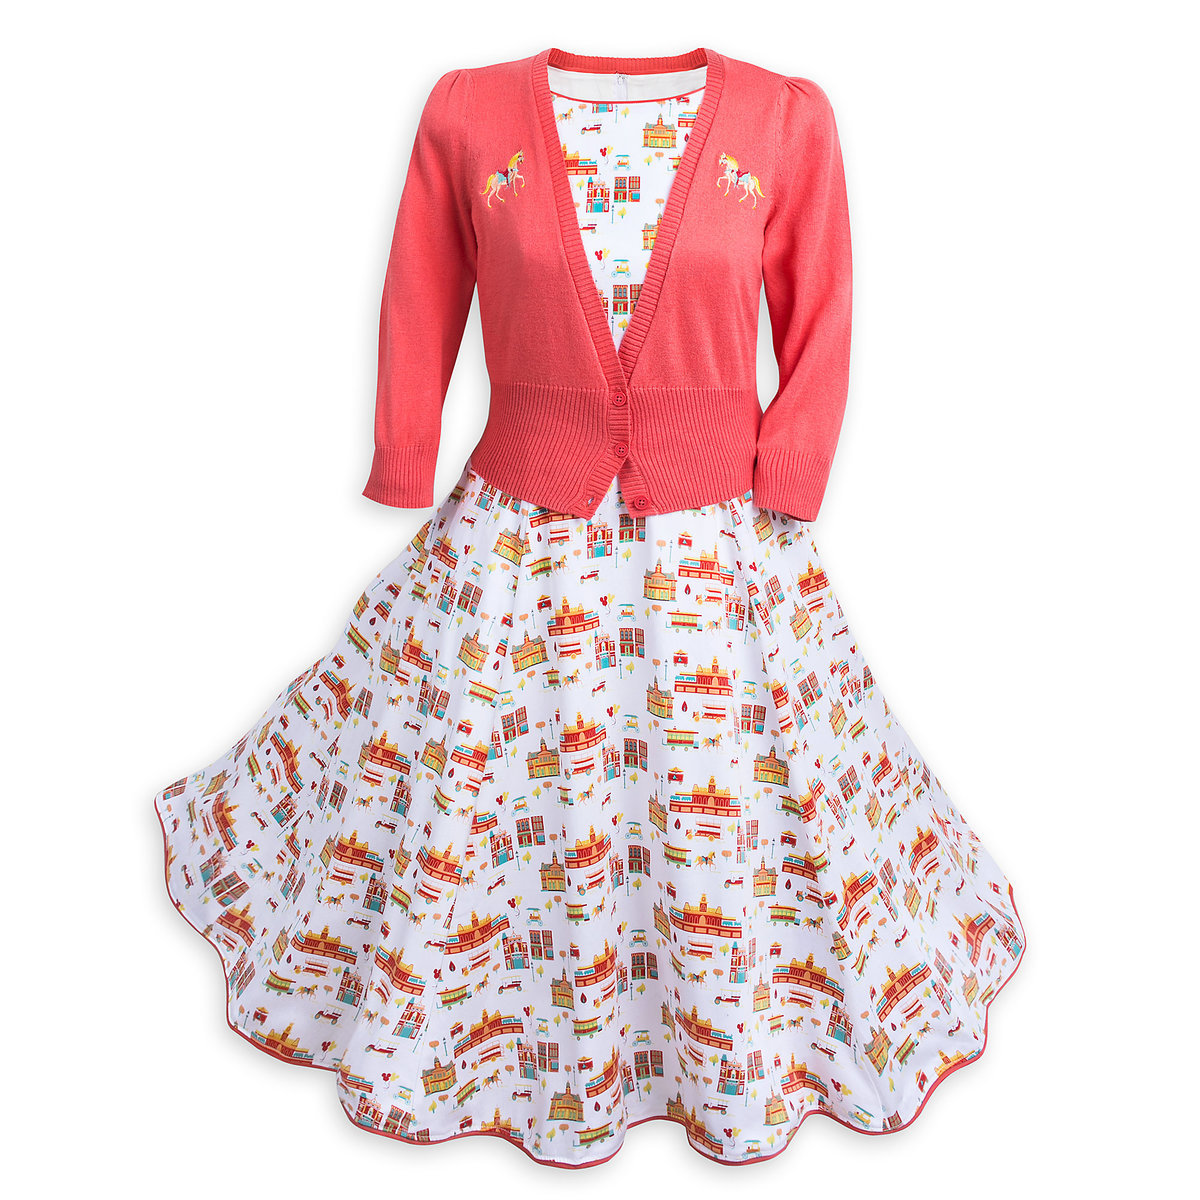 06427c3f57 Product Image of Main Street, U.S.A Dress & Sweater Set for Women by Her  Universe